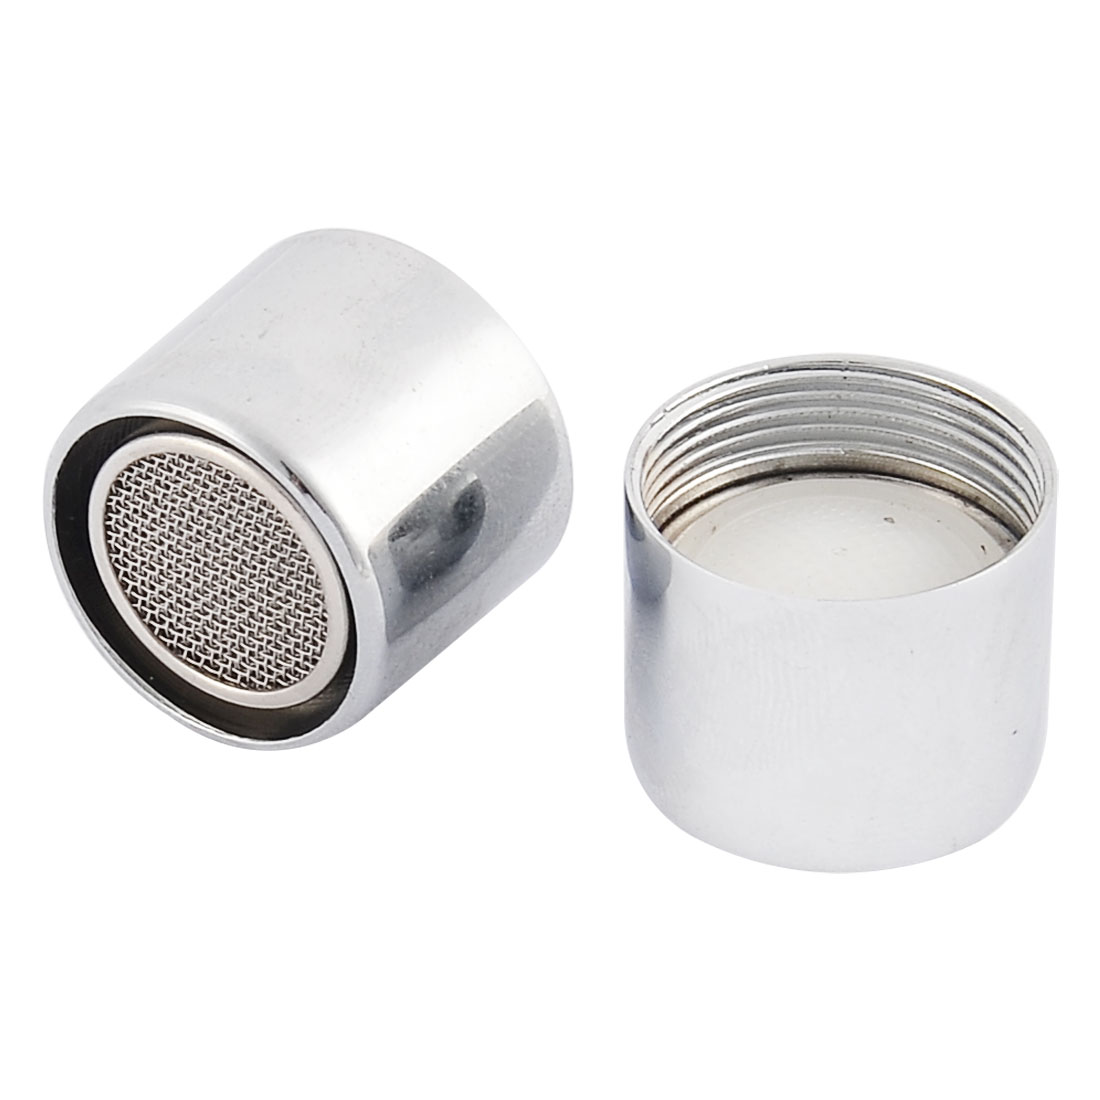 Household Stainless Steel Faucet Filter Net Nozzle 19mm Female Thread 2 Pcs